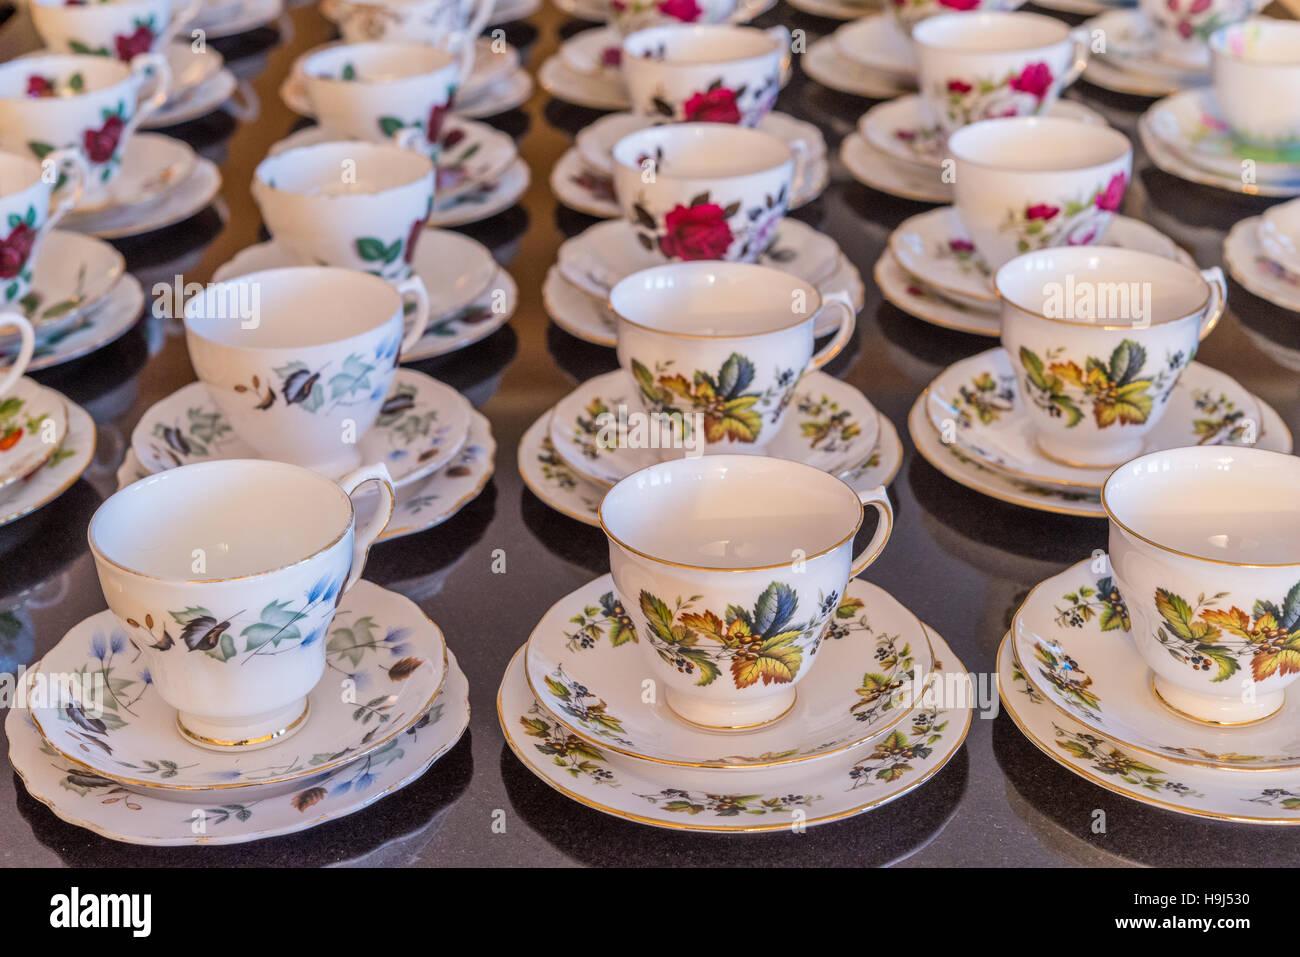 A collection of fine bone china tea cups and saucers. - Stock Image